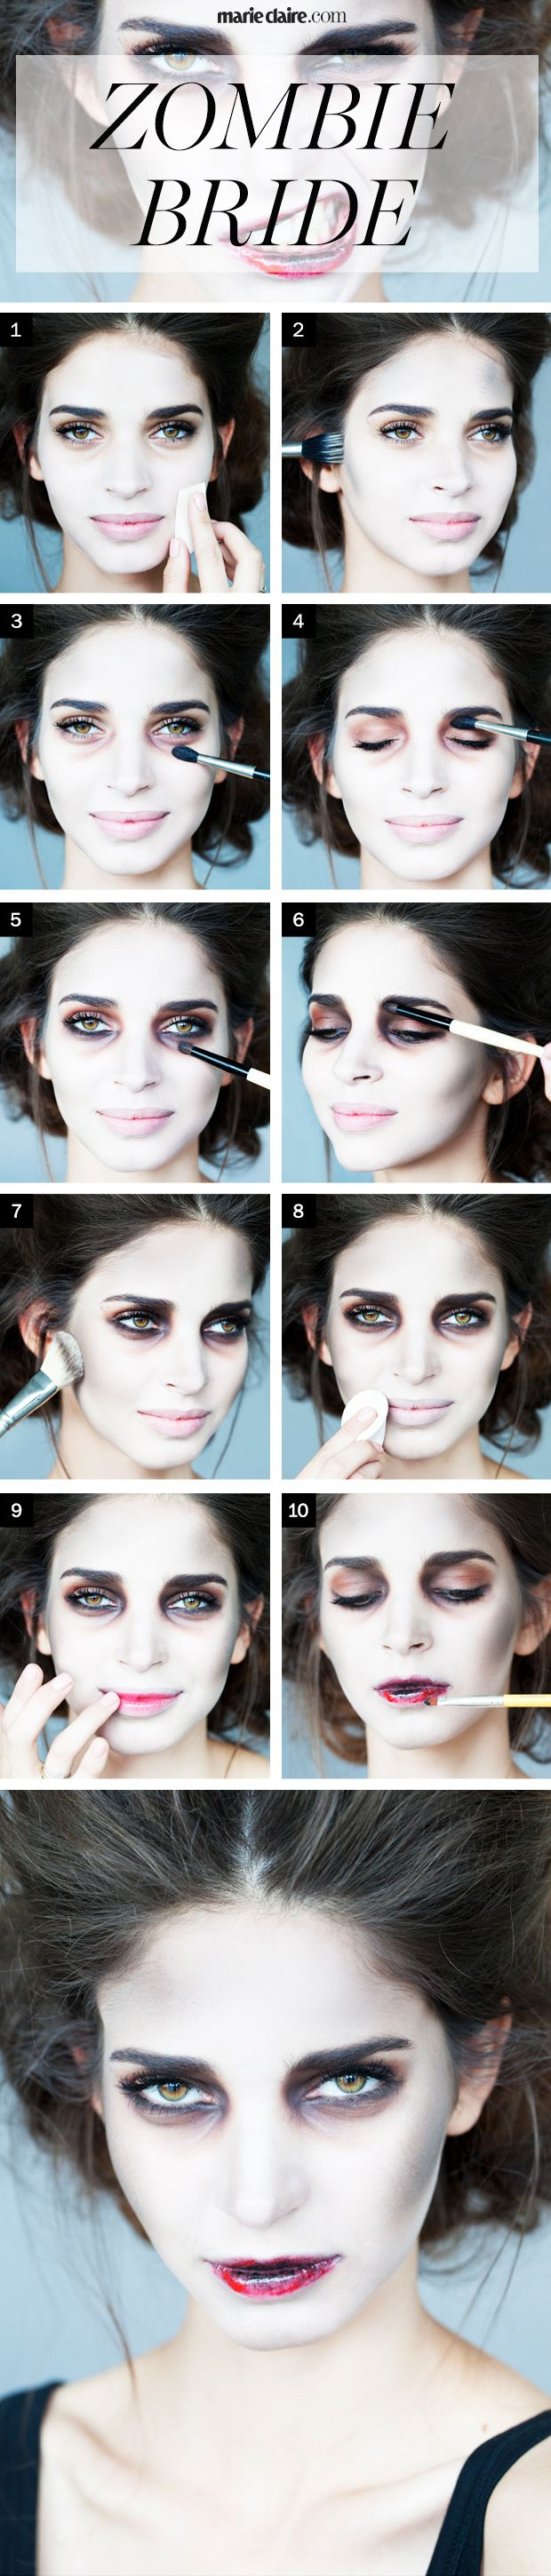 zombie bride halloween makeup tutorial - MarieClaire.com